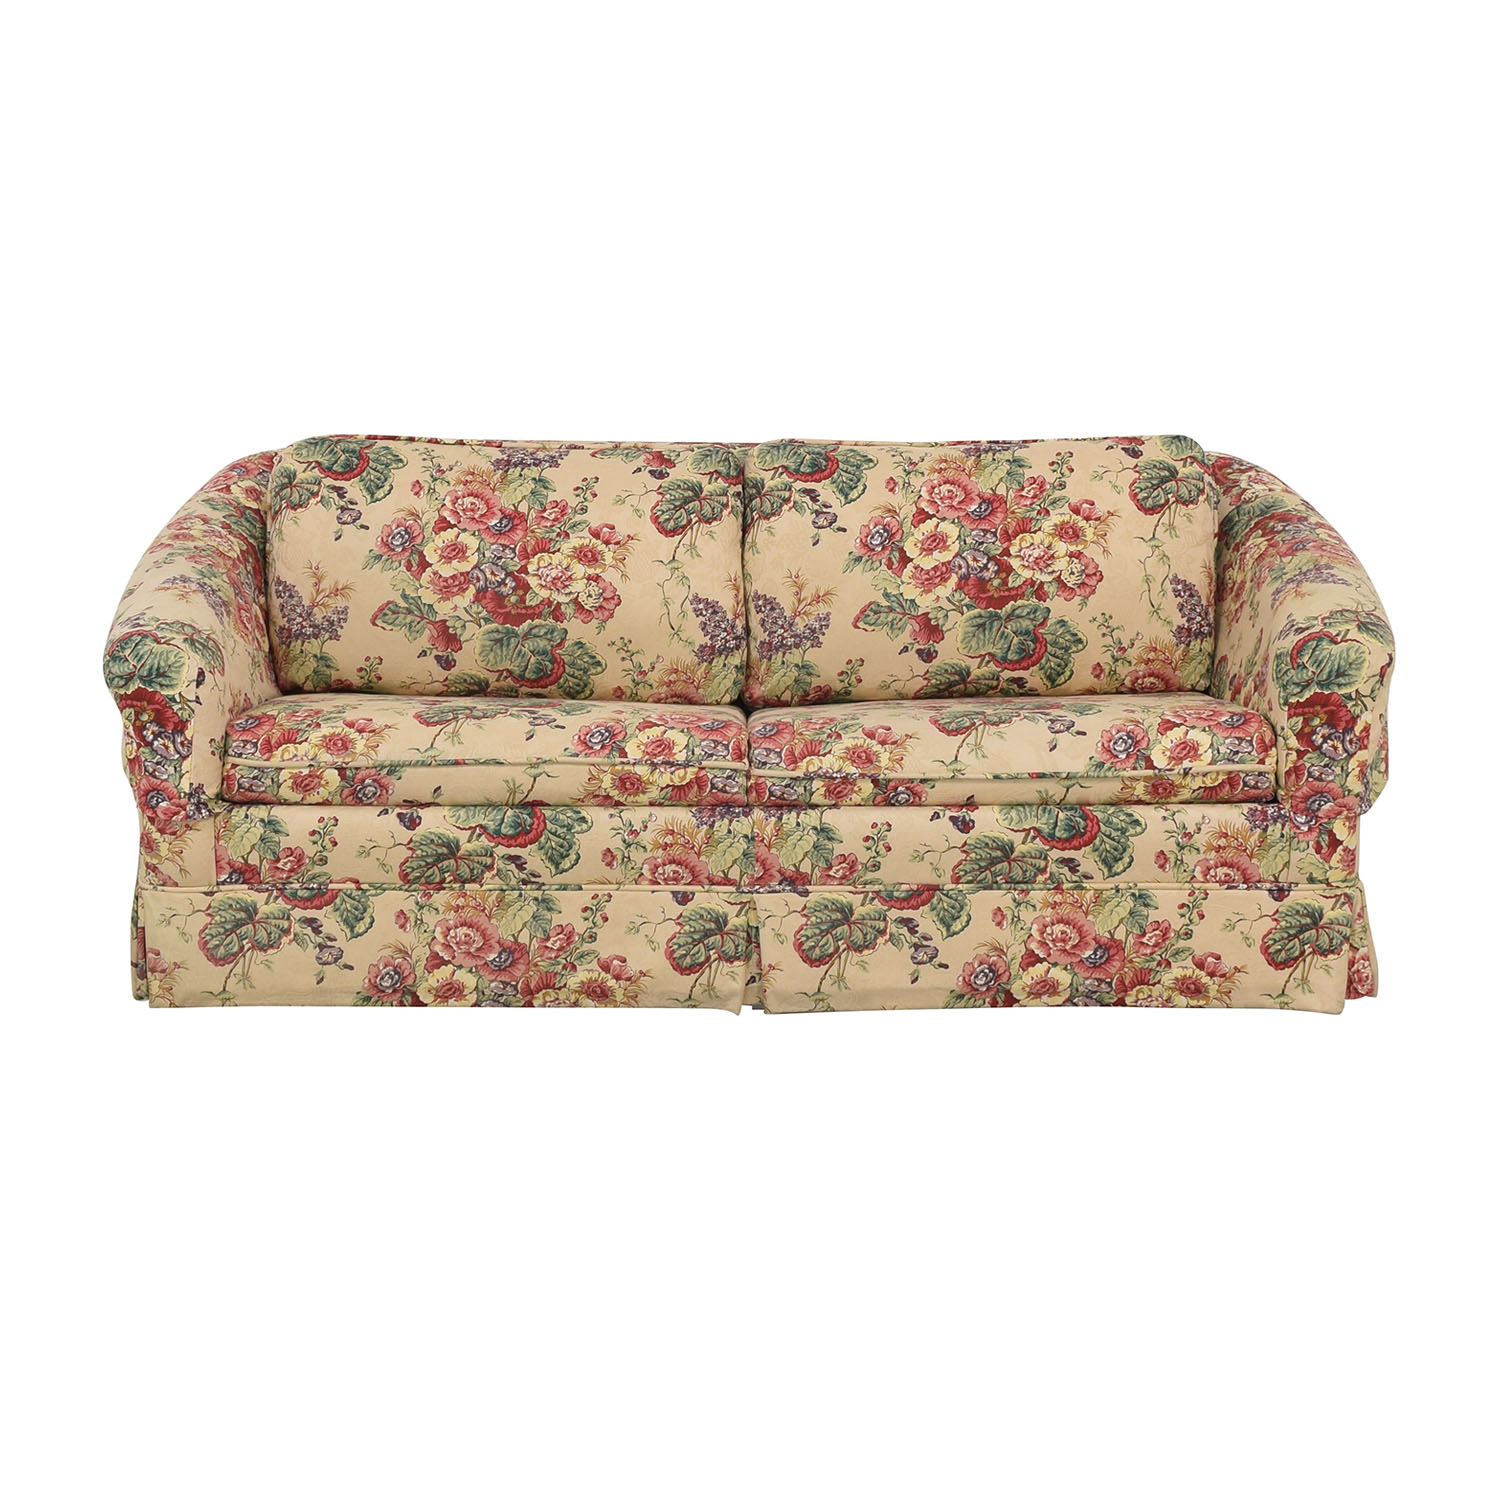 Castro Convertibles Castro Convertibles Full Floral Sofa Bed on sale